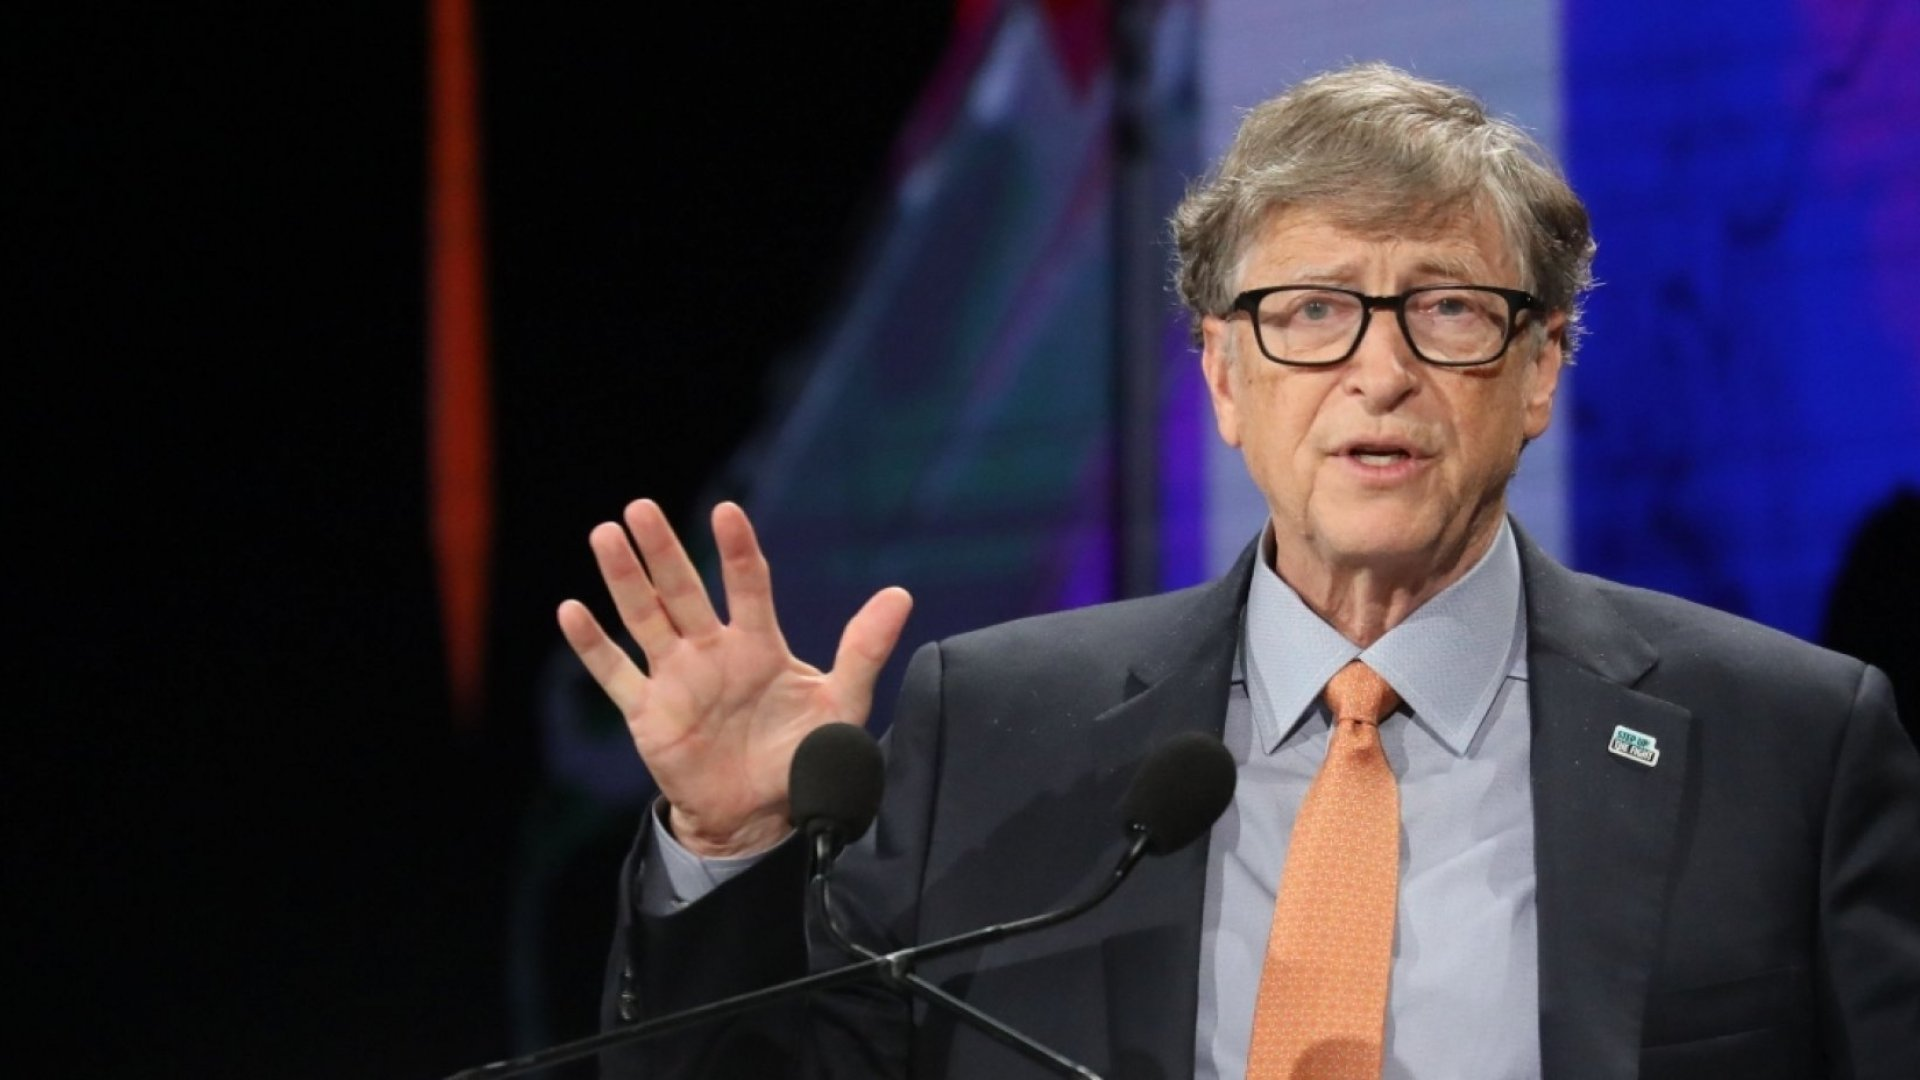 Bill Gates Says Coronavirus May Be a 'Once-in-a-Century Pathogen.' Here's How to Fight It Now